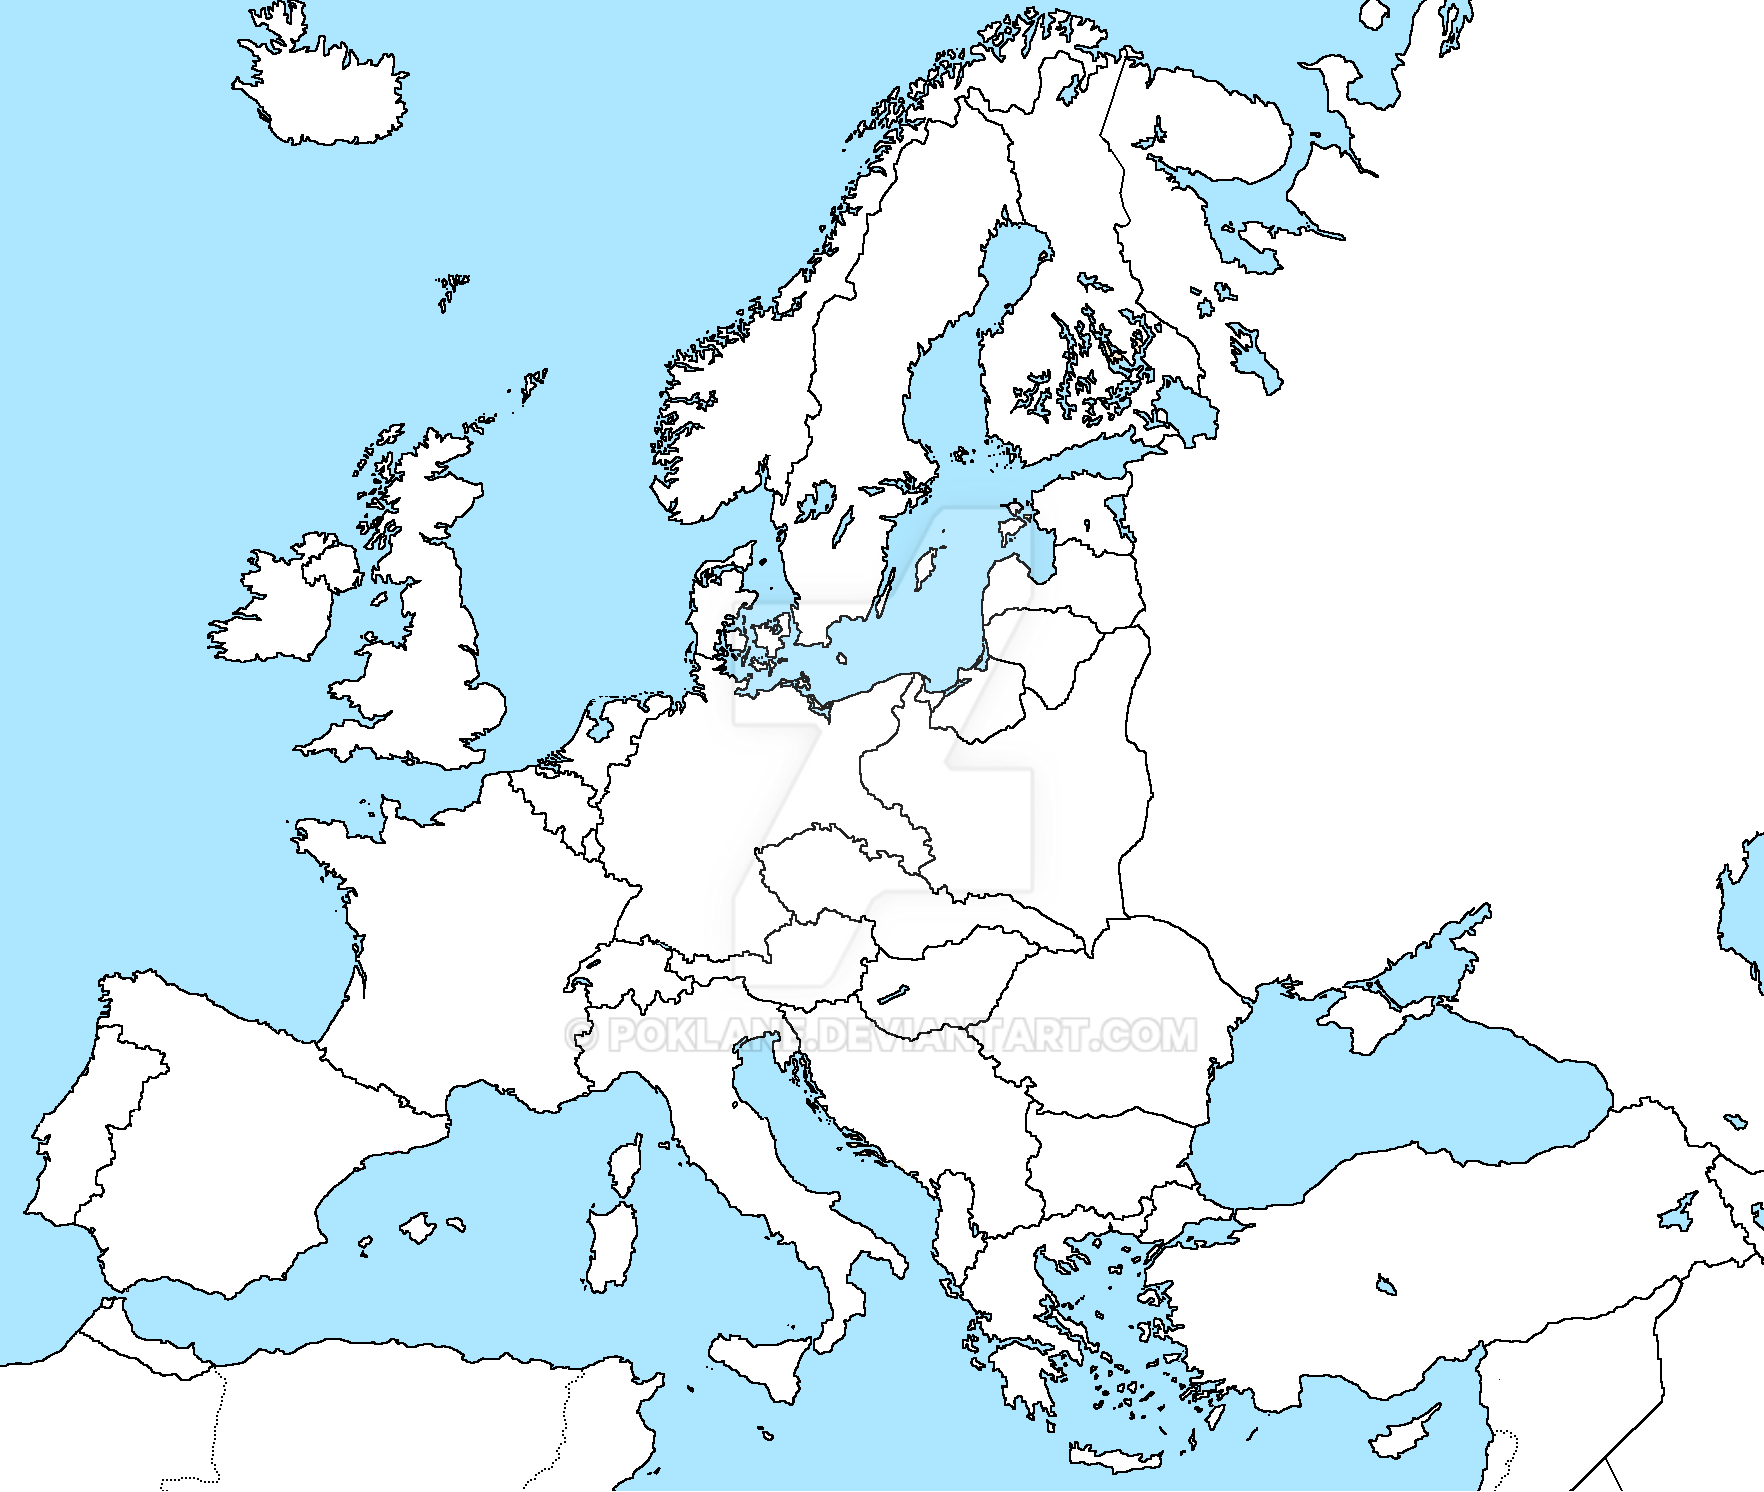 europe with an allied netherlands after ww1 by poklane on deviantart Europe Before World War 1 europe with an allied netherlands after ww1 by poklane